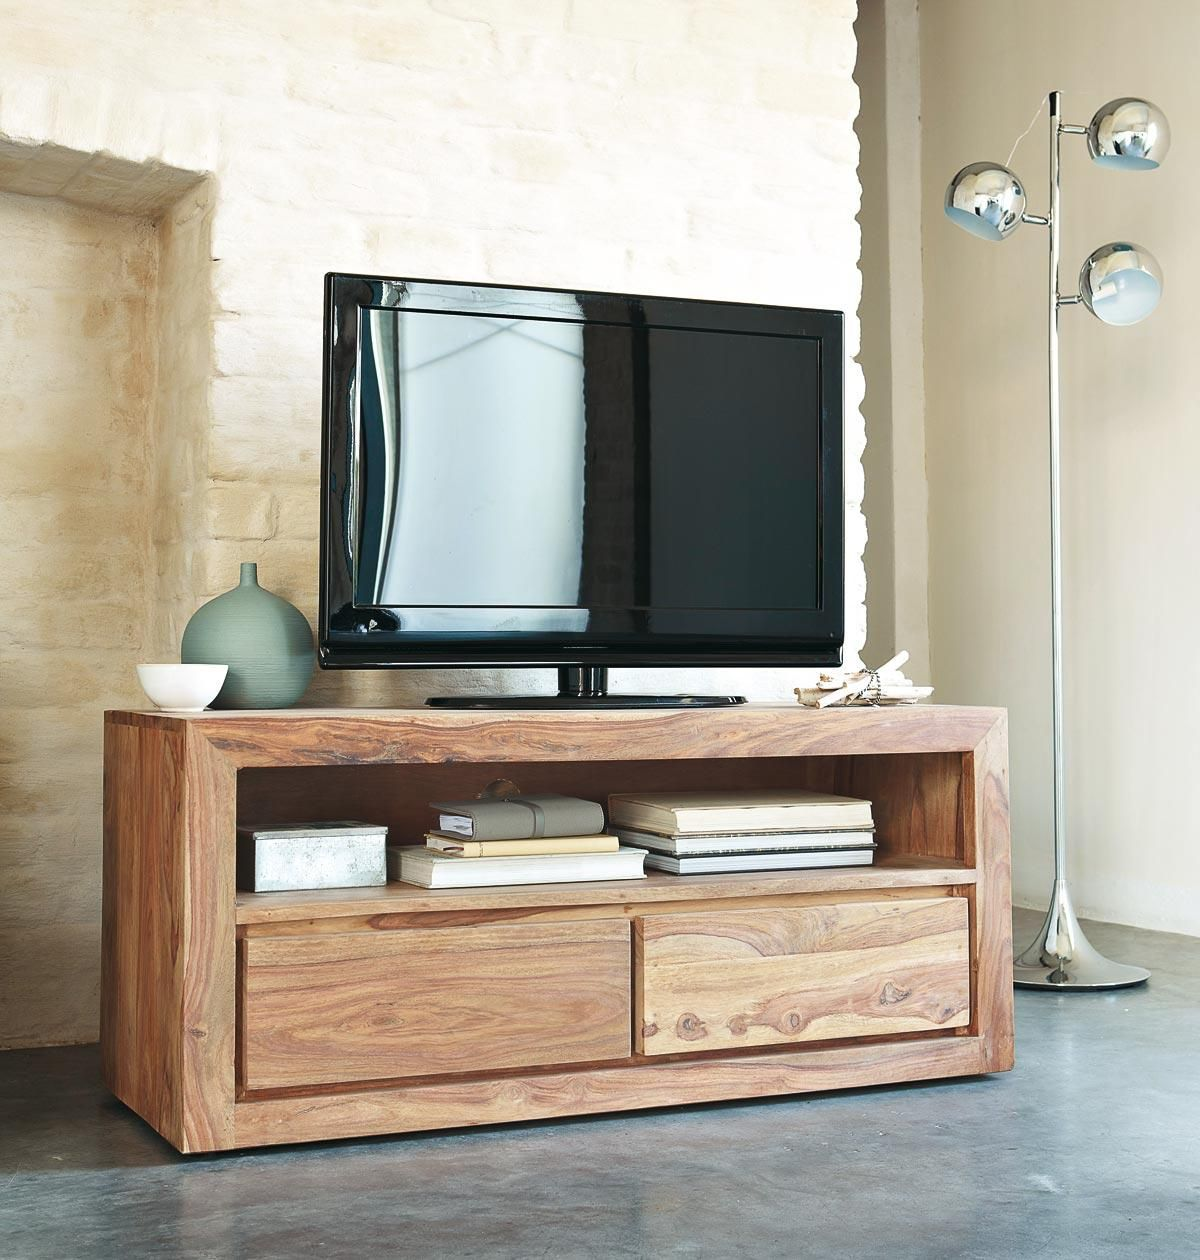 meuble tv 2 tiroirs en sheesham massif meuble tv tv et meuble moderne. Black Bedroom Furniture Sets. Home Design Ideas